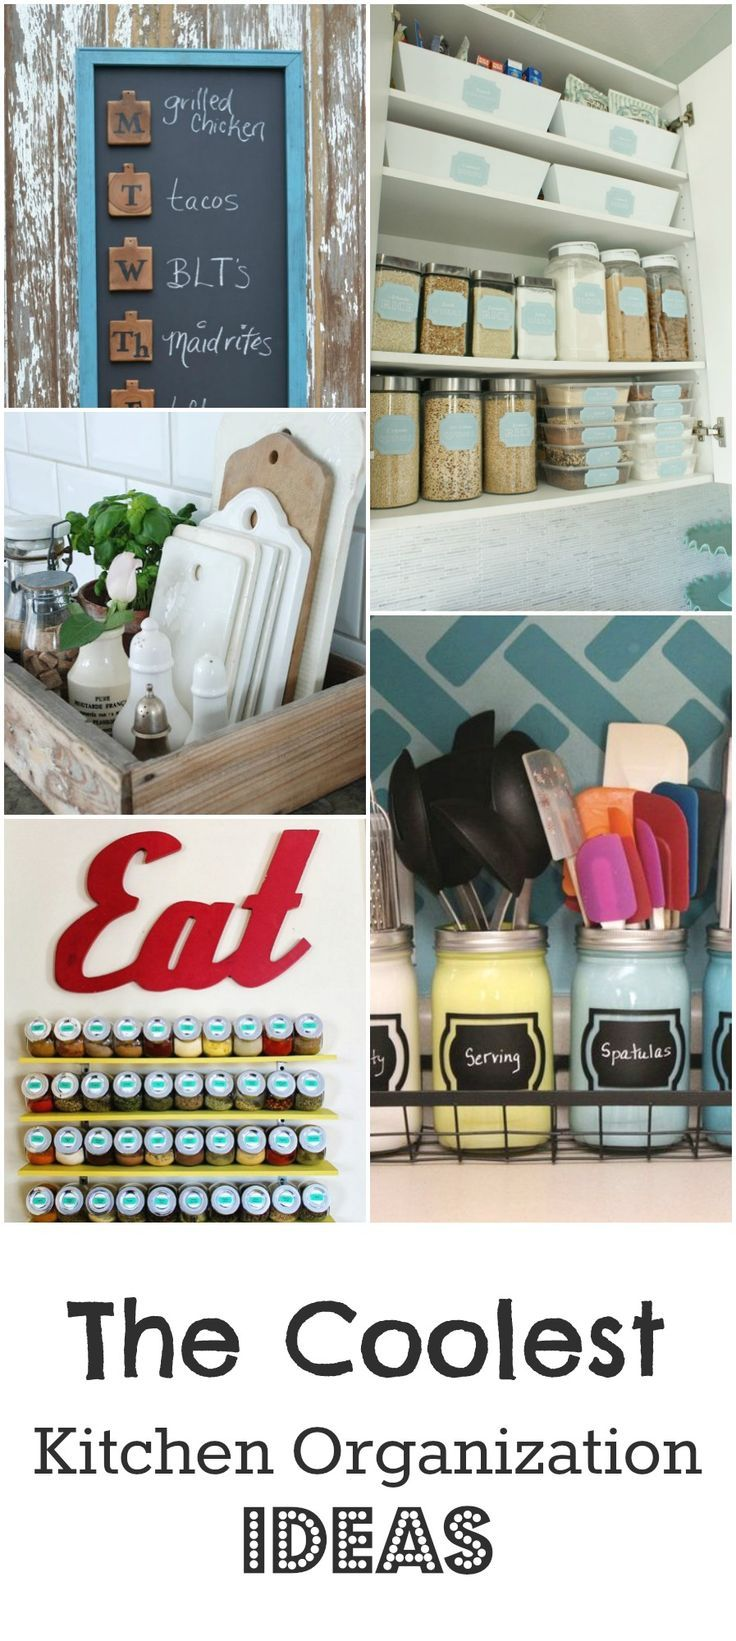 Pin by nora medina on for the home in pinterest kitchen